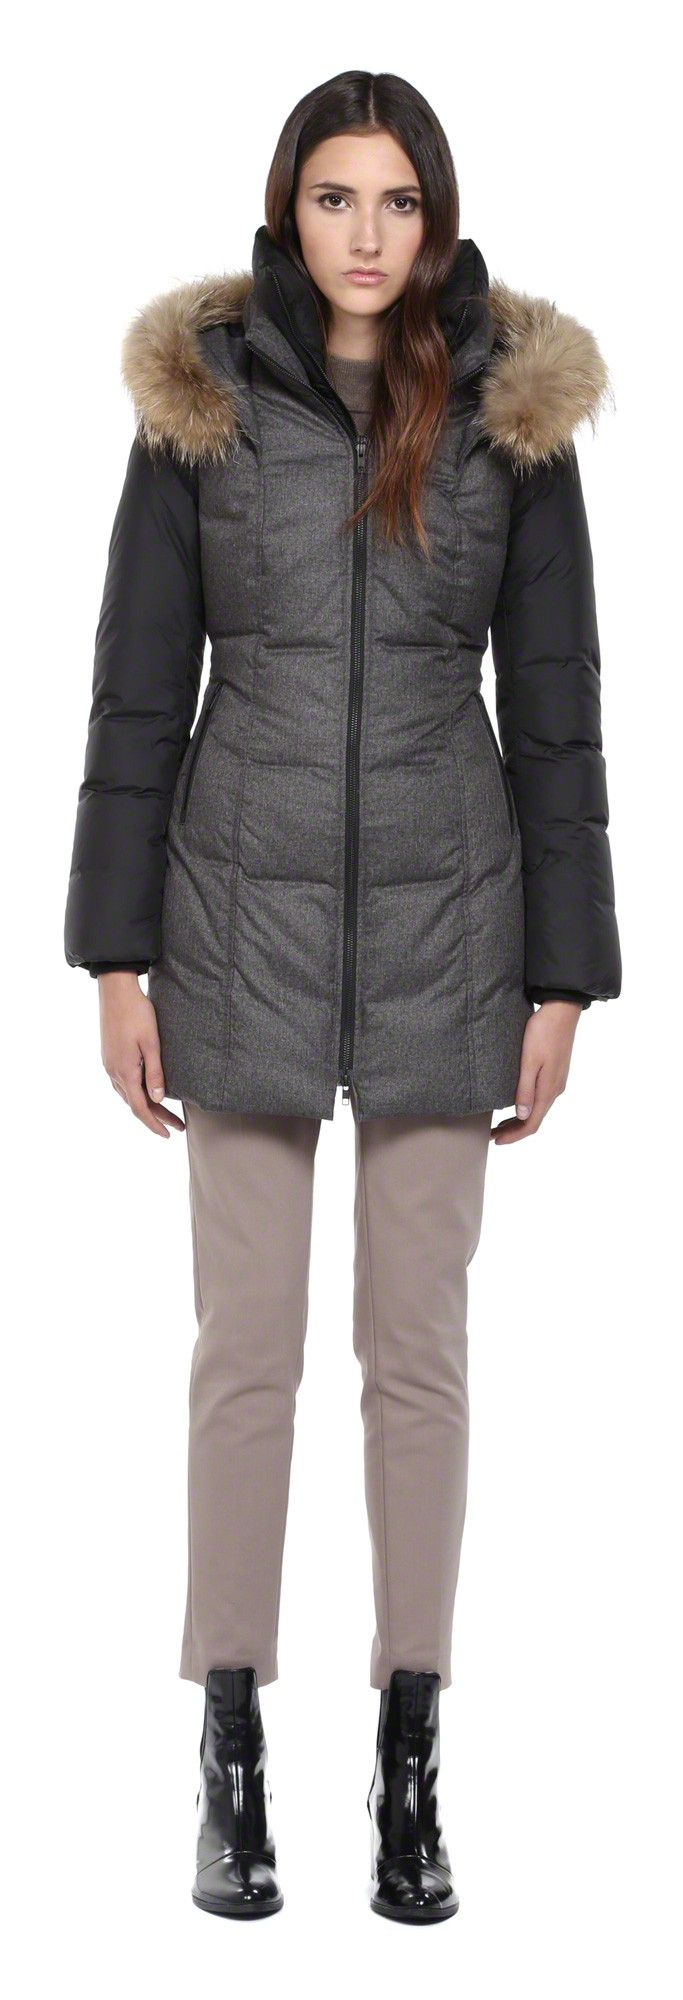 Soia & kyo Emilie Grey Down Coat With Fur Hood in Gray | Lyst